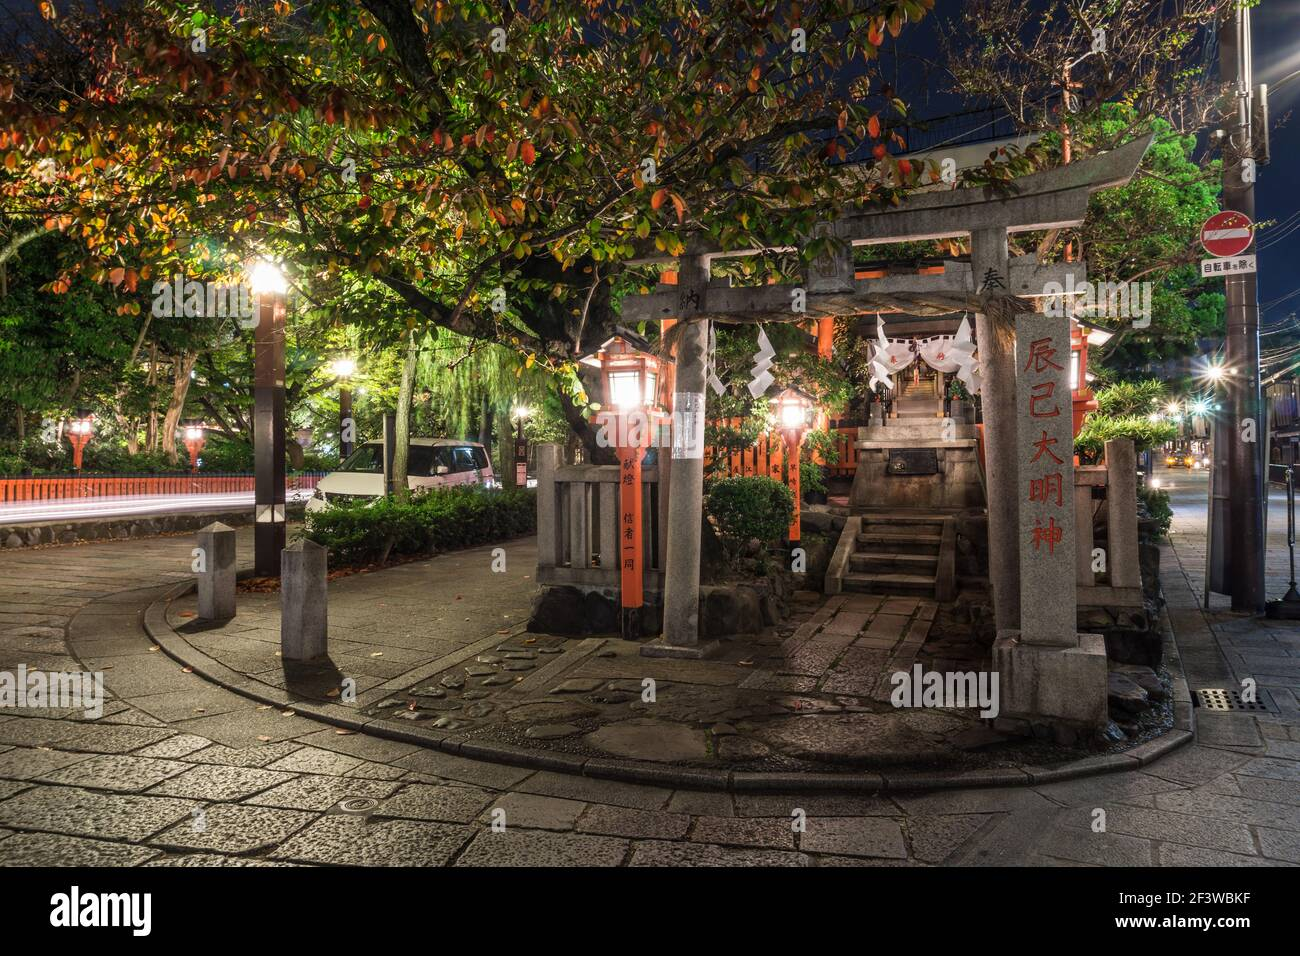 Long exposure night view of the road along the Shirakawa river in the Gion area of Kyoto, Japan. The shrine was featured in the game Gran Tourismo. Stock Photo